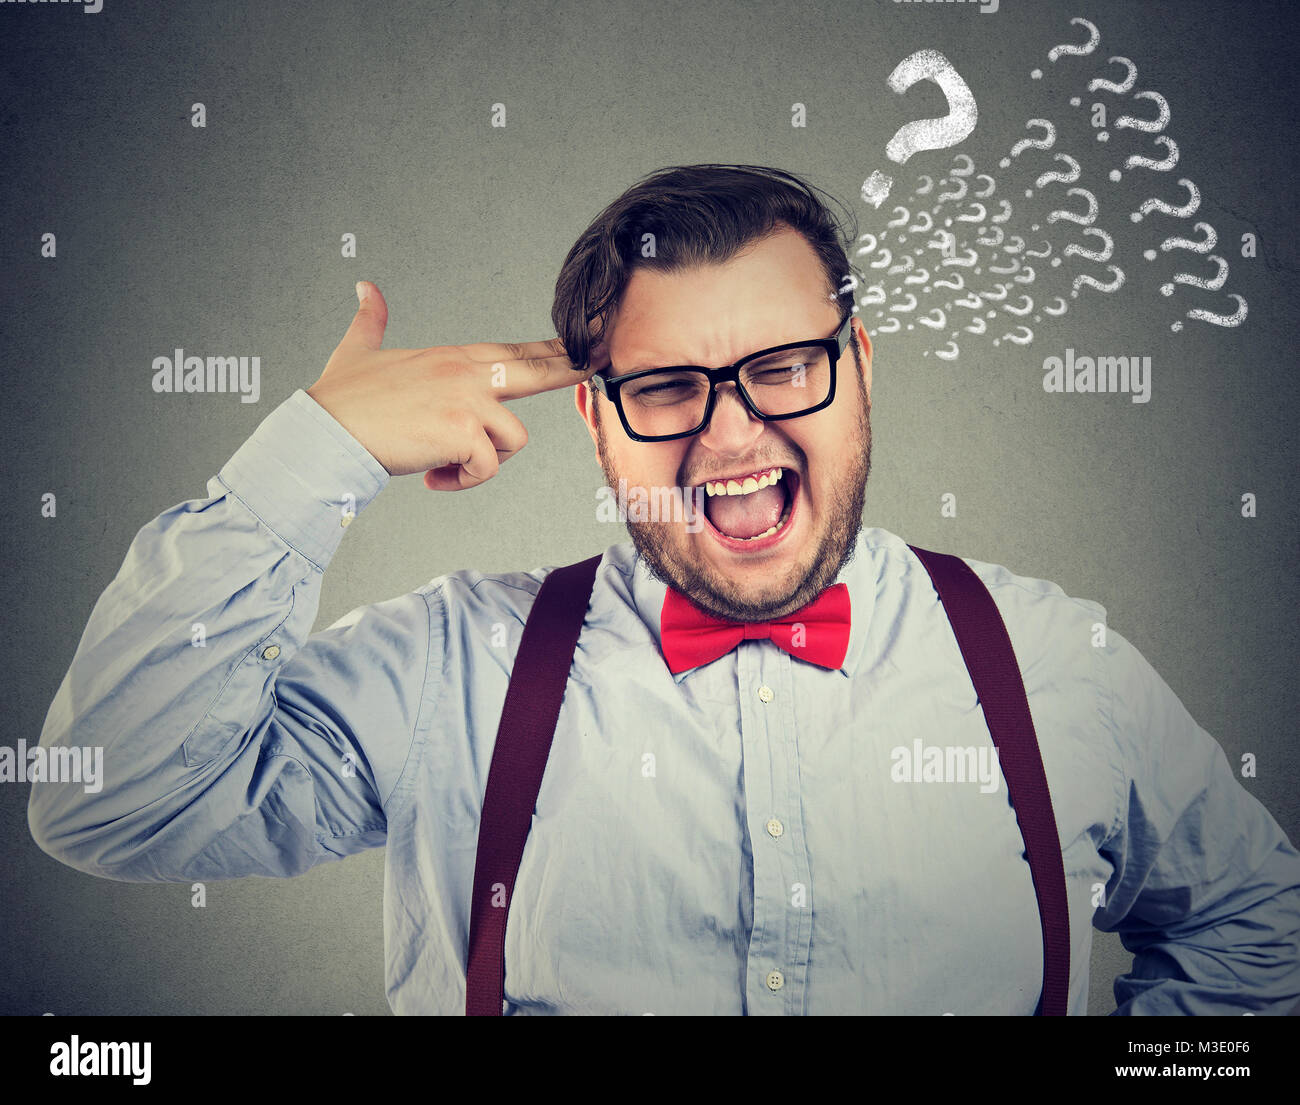 Cheeky man in bow-tie holding fingers to temple looking anxious with questions. - Stock Image